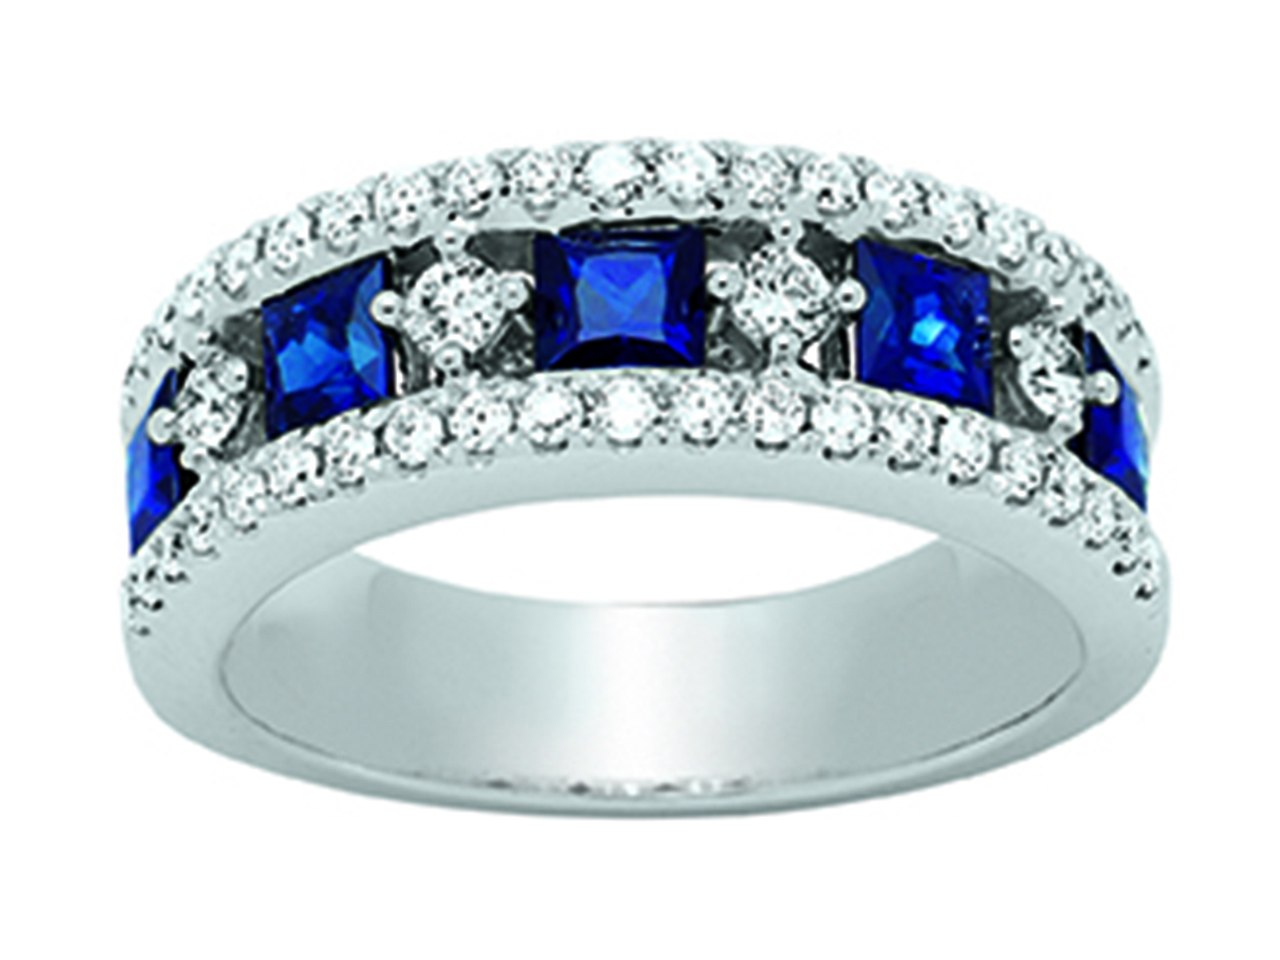 Bague Or girs 18k, saphirs 1,49ct, diamants 0,57ct, doigt 53